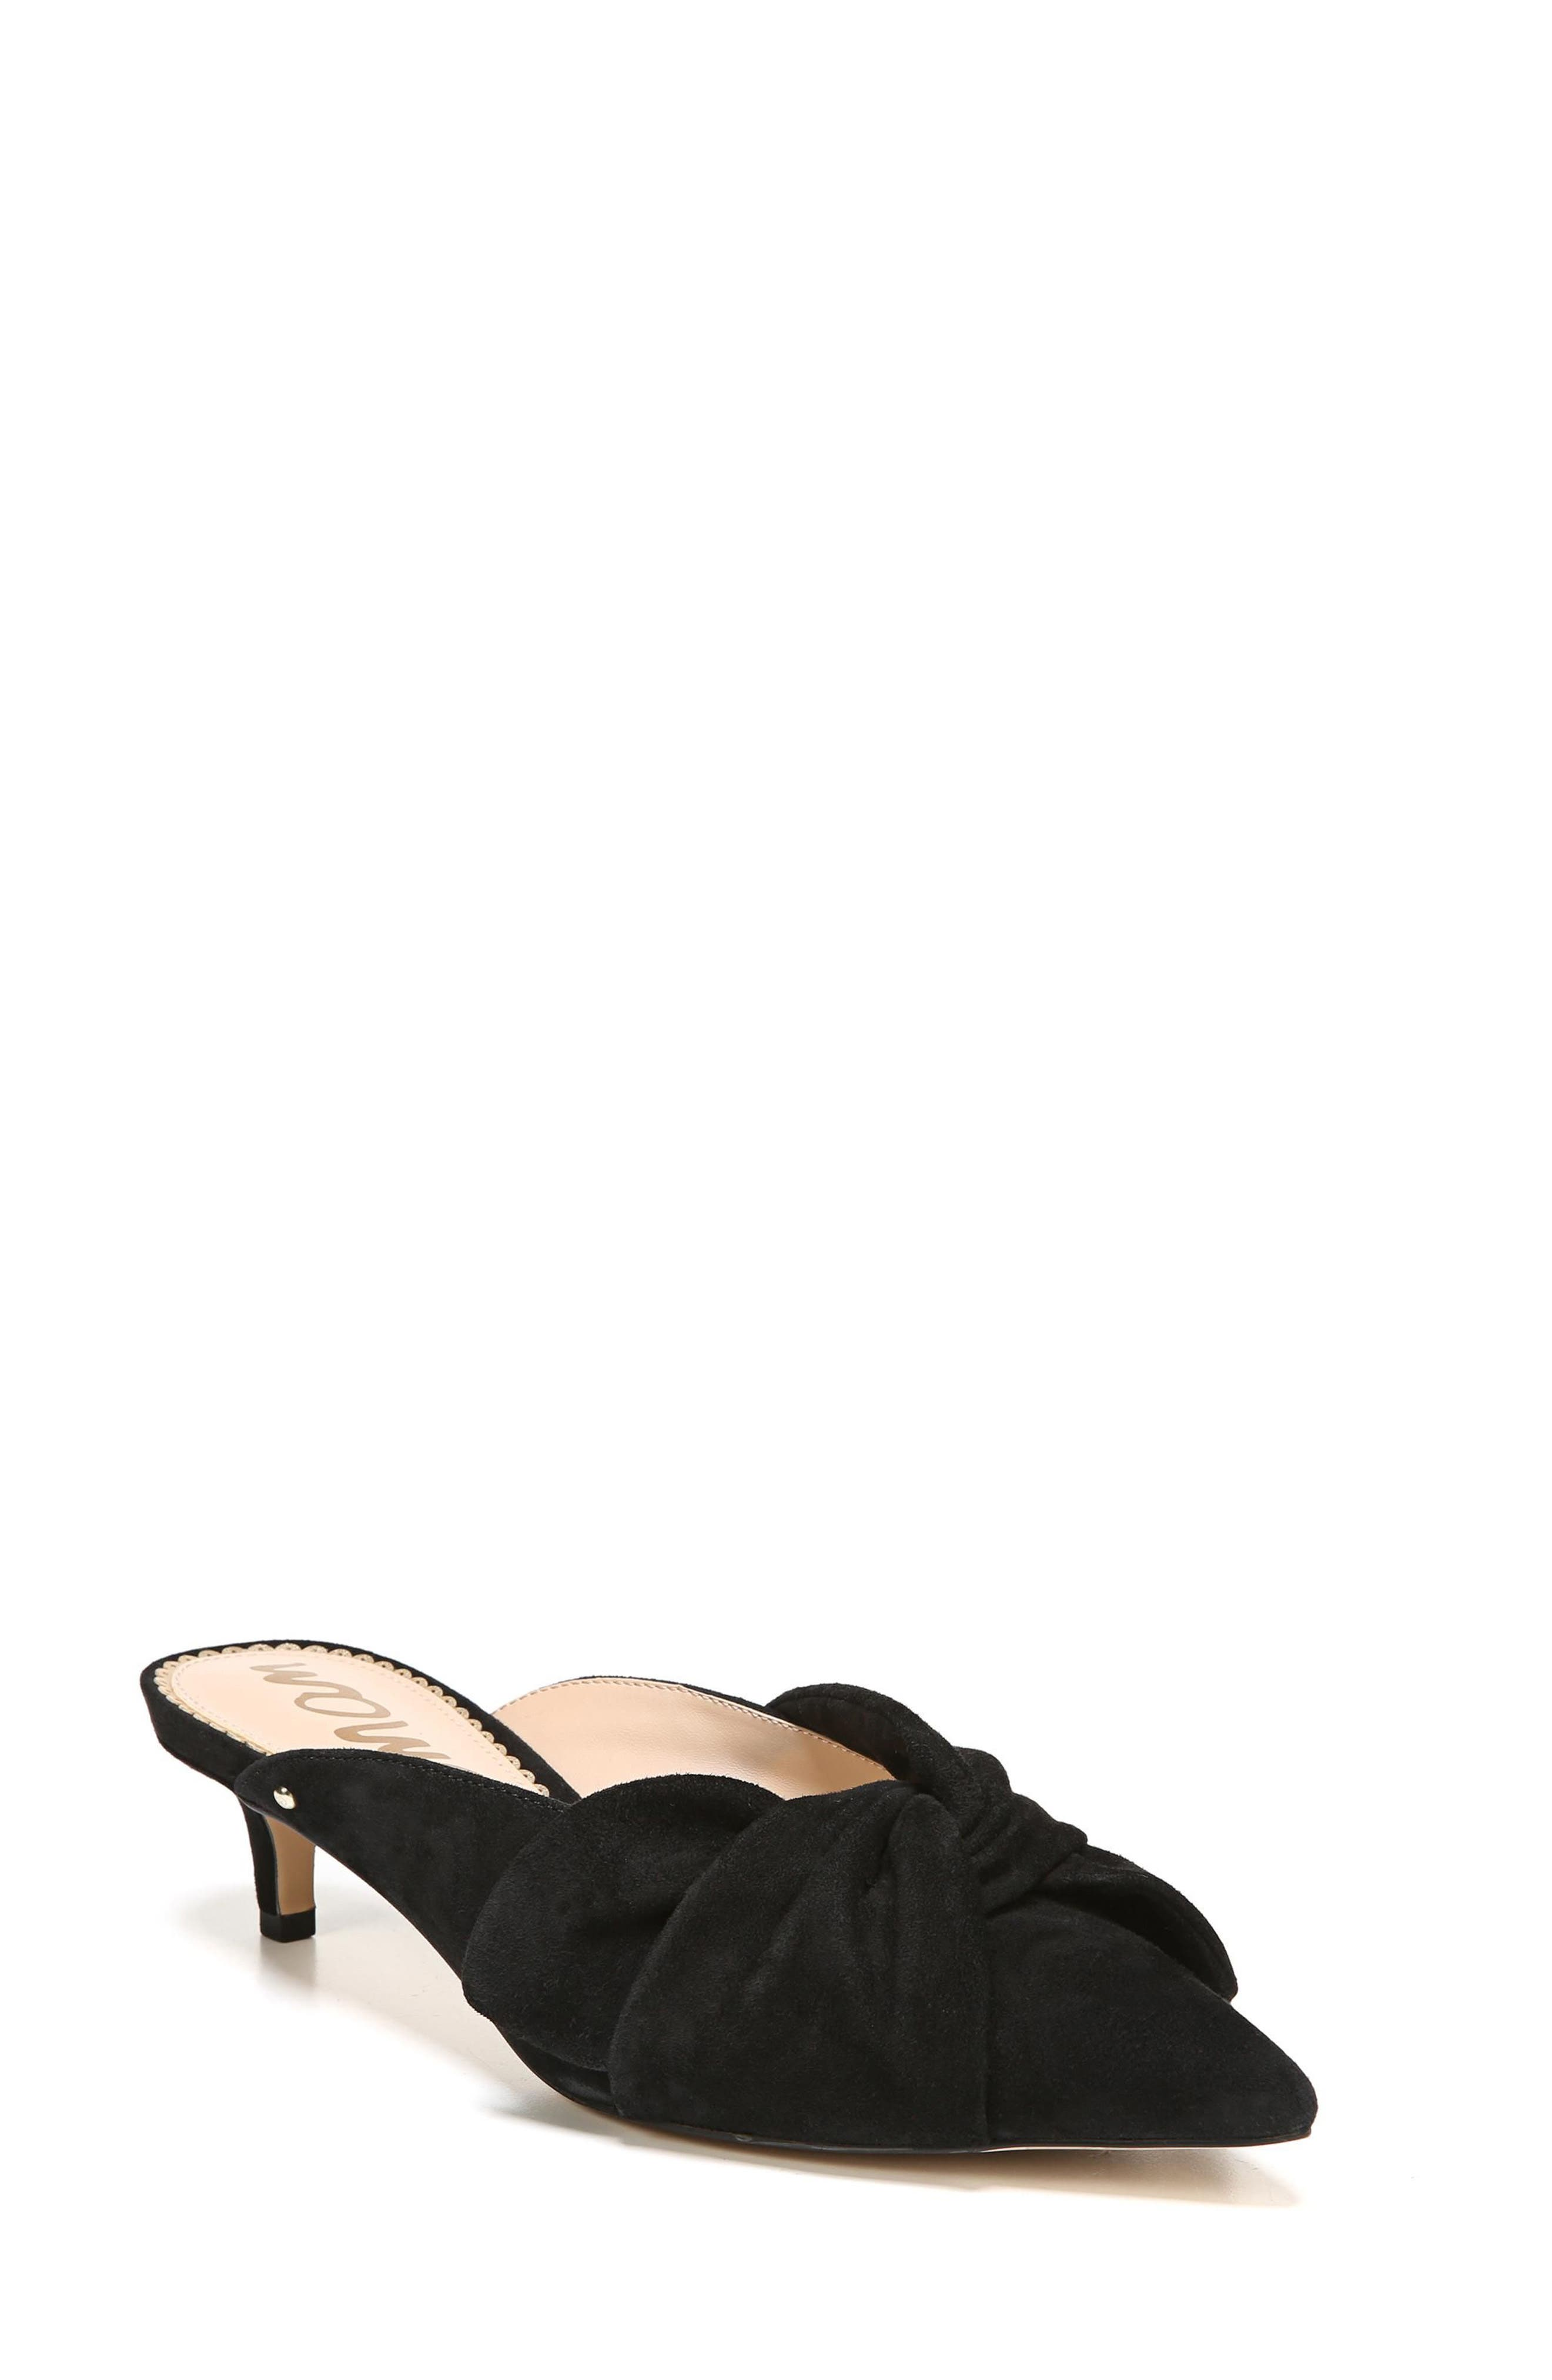 Laney Pointy Toe Mule,                             Main thumbnail 1, color,                             001